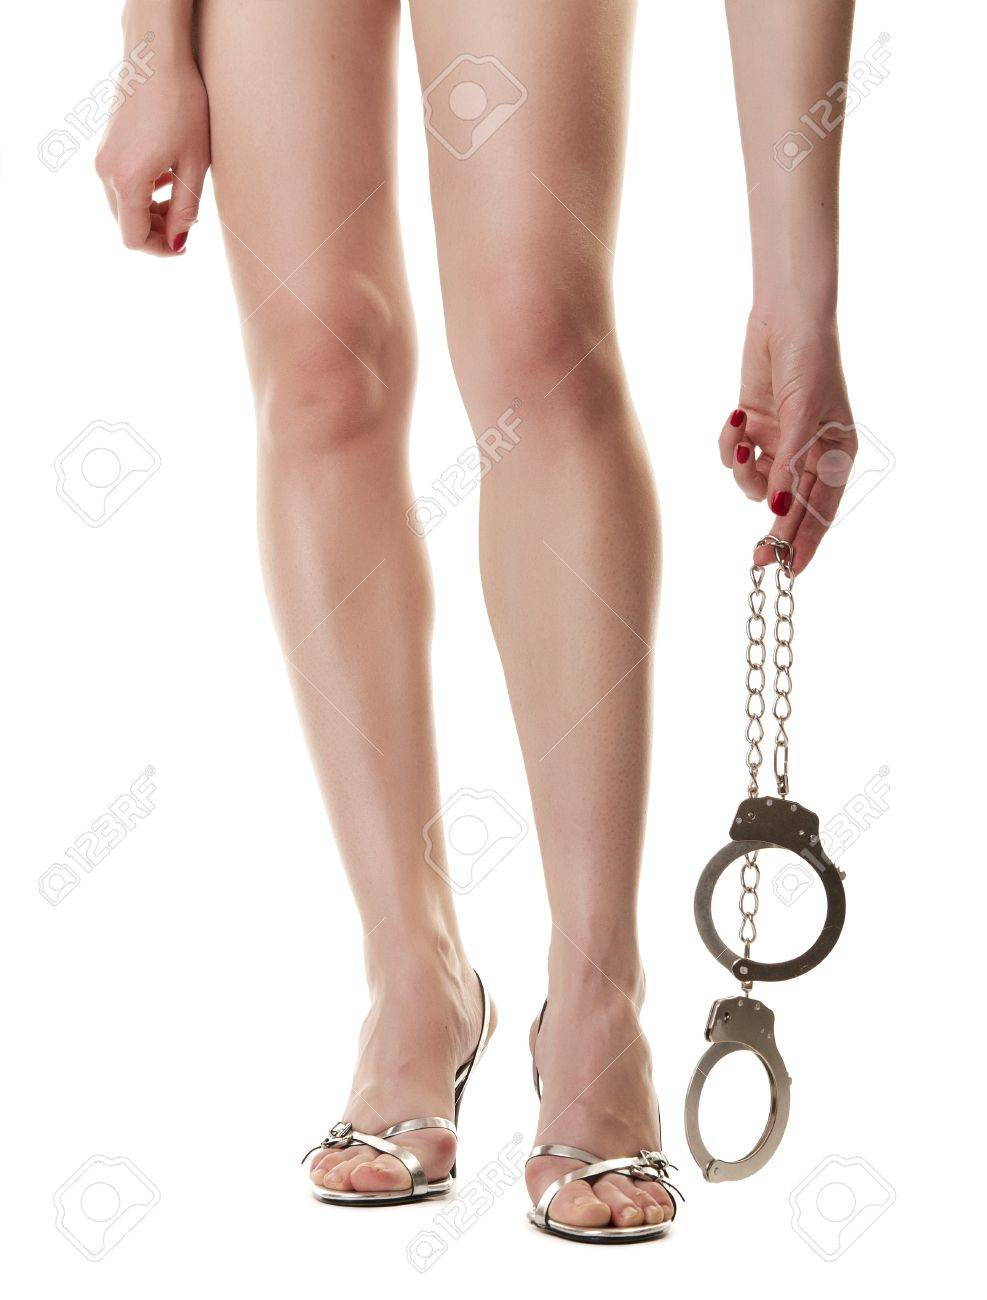 A pair of long female legs and hand holding handcuffs. Isolated on white background Stock Photo - 9507710